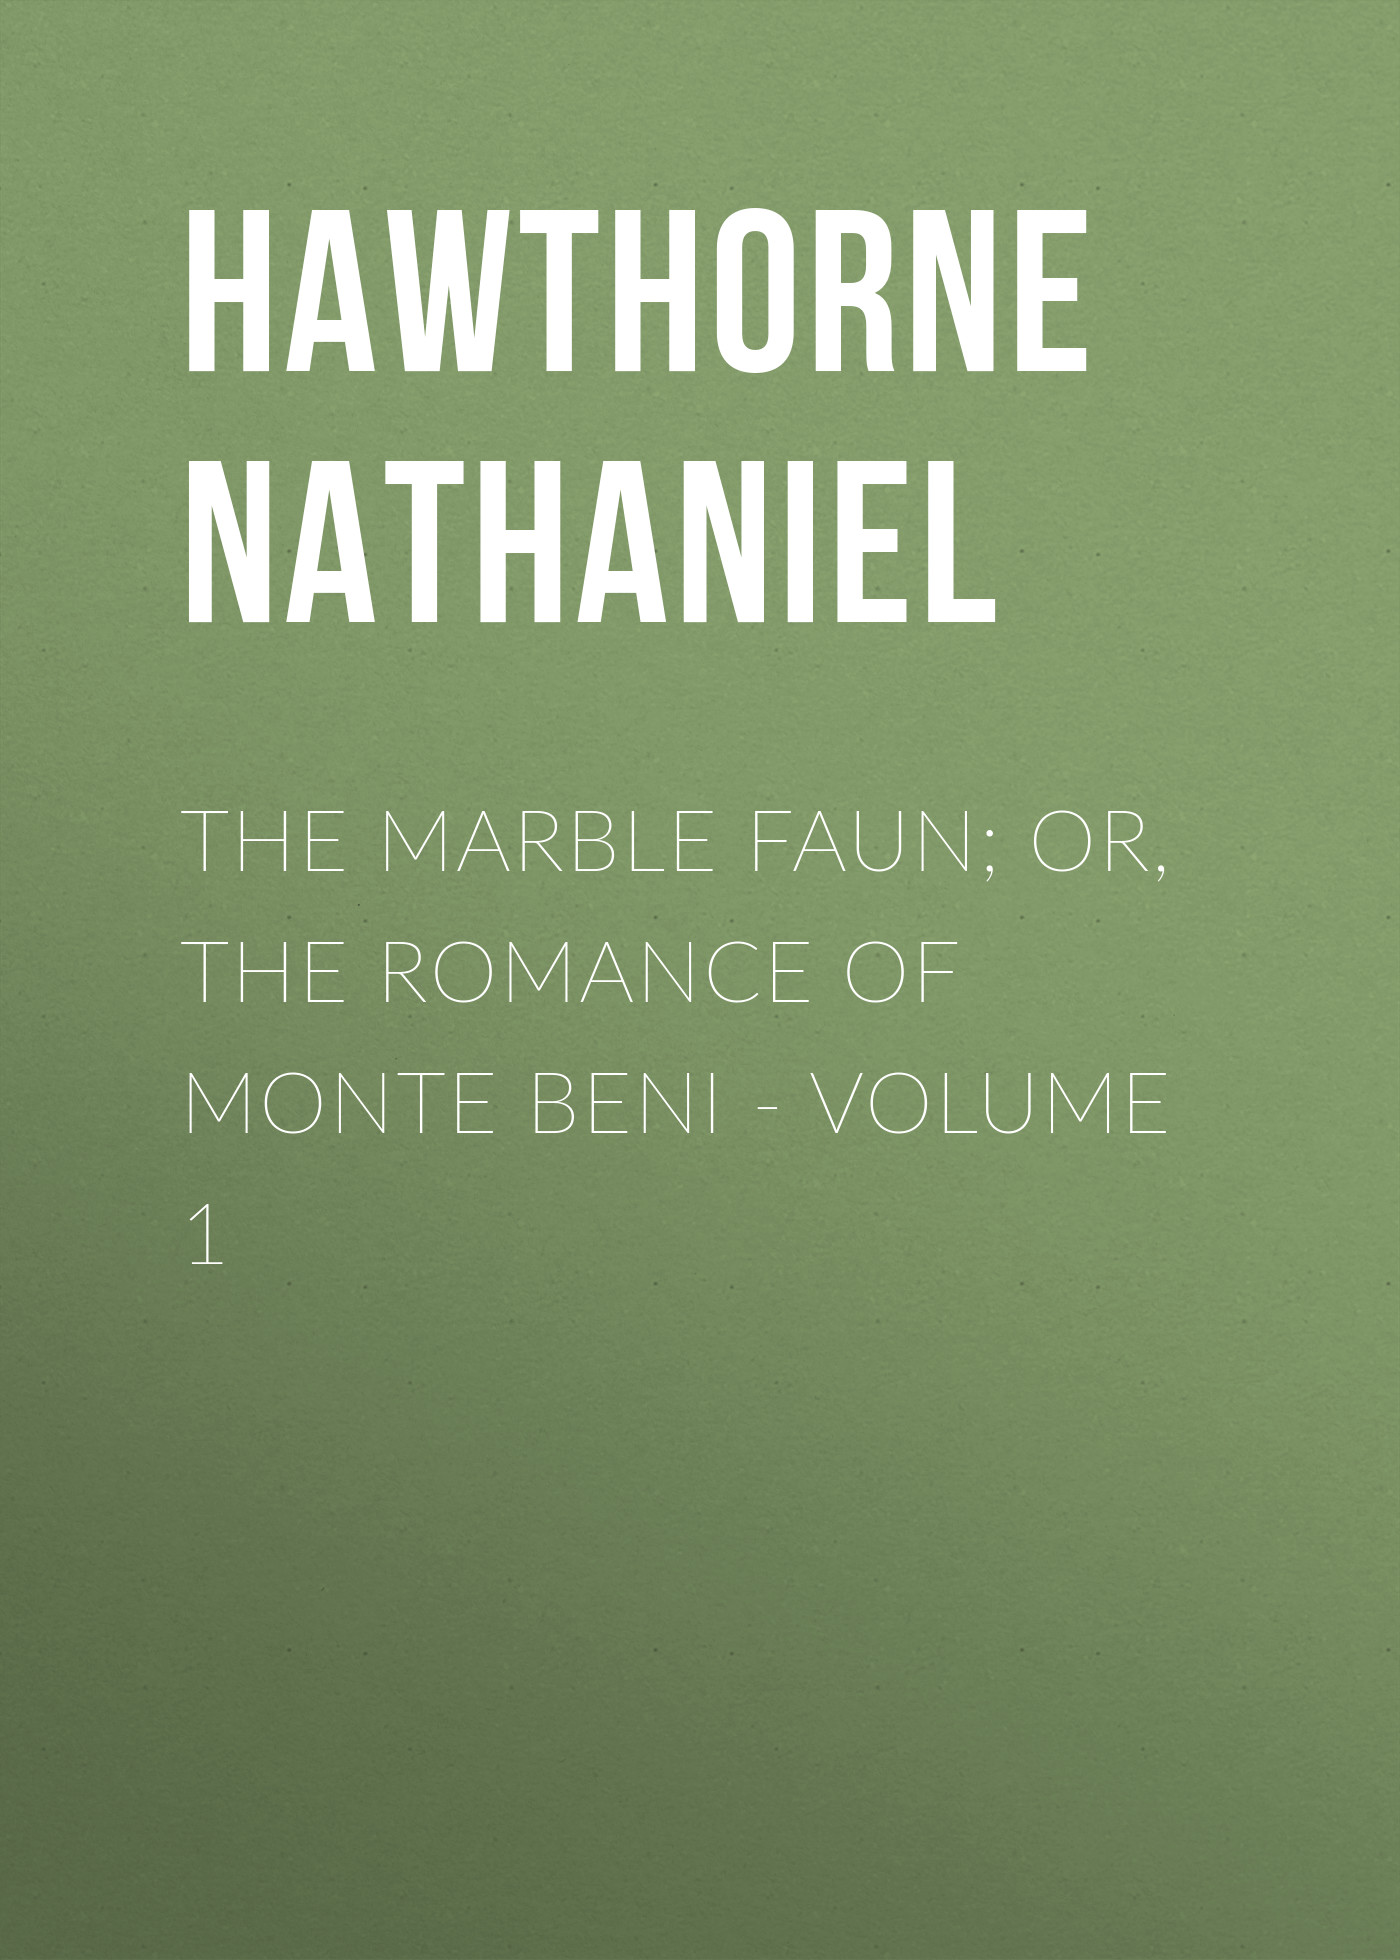 Hawthorne Nathaniel The Marble Faun; Or, The Romance of Monte Beni - Volume 1 hawthorne nathaniel the marble faun or the romance of monte beni volume 2